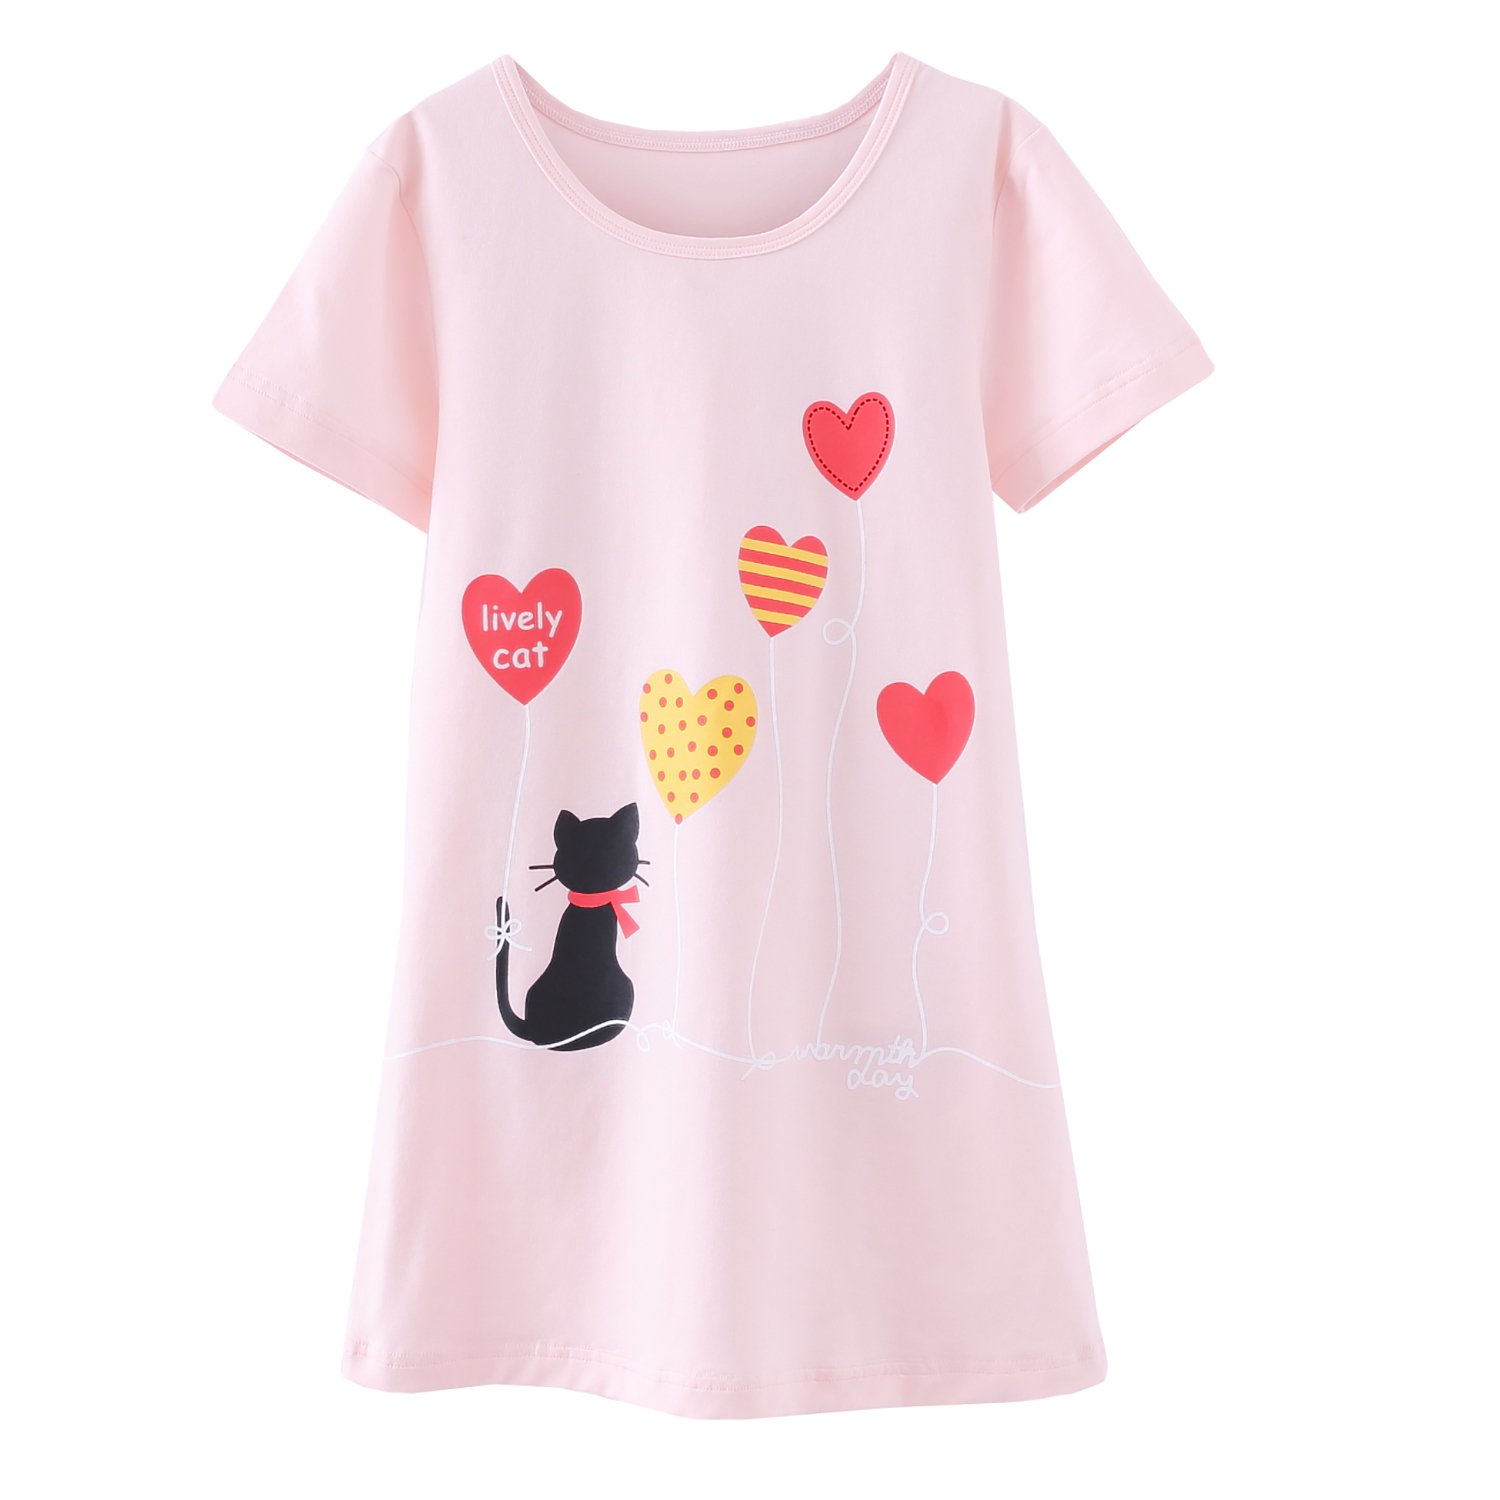 Abalaco Girls Kids Cotton Summer Cartoon Nightgown Sleepwear Dress Pretty Home Dress 3-12T (11-12 Years, Pink heart) by Abalaco (Image #1)